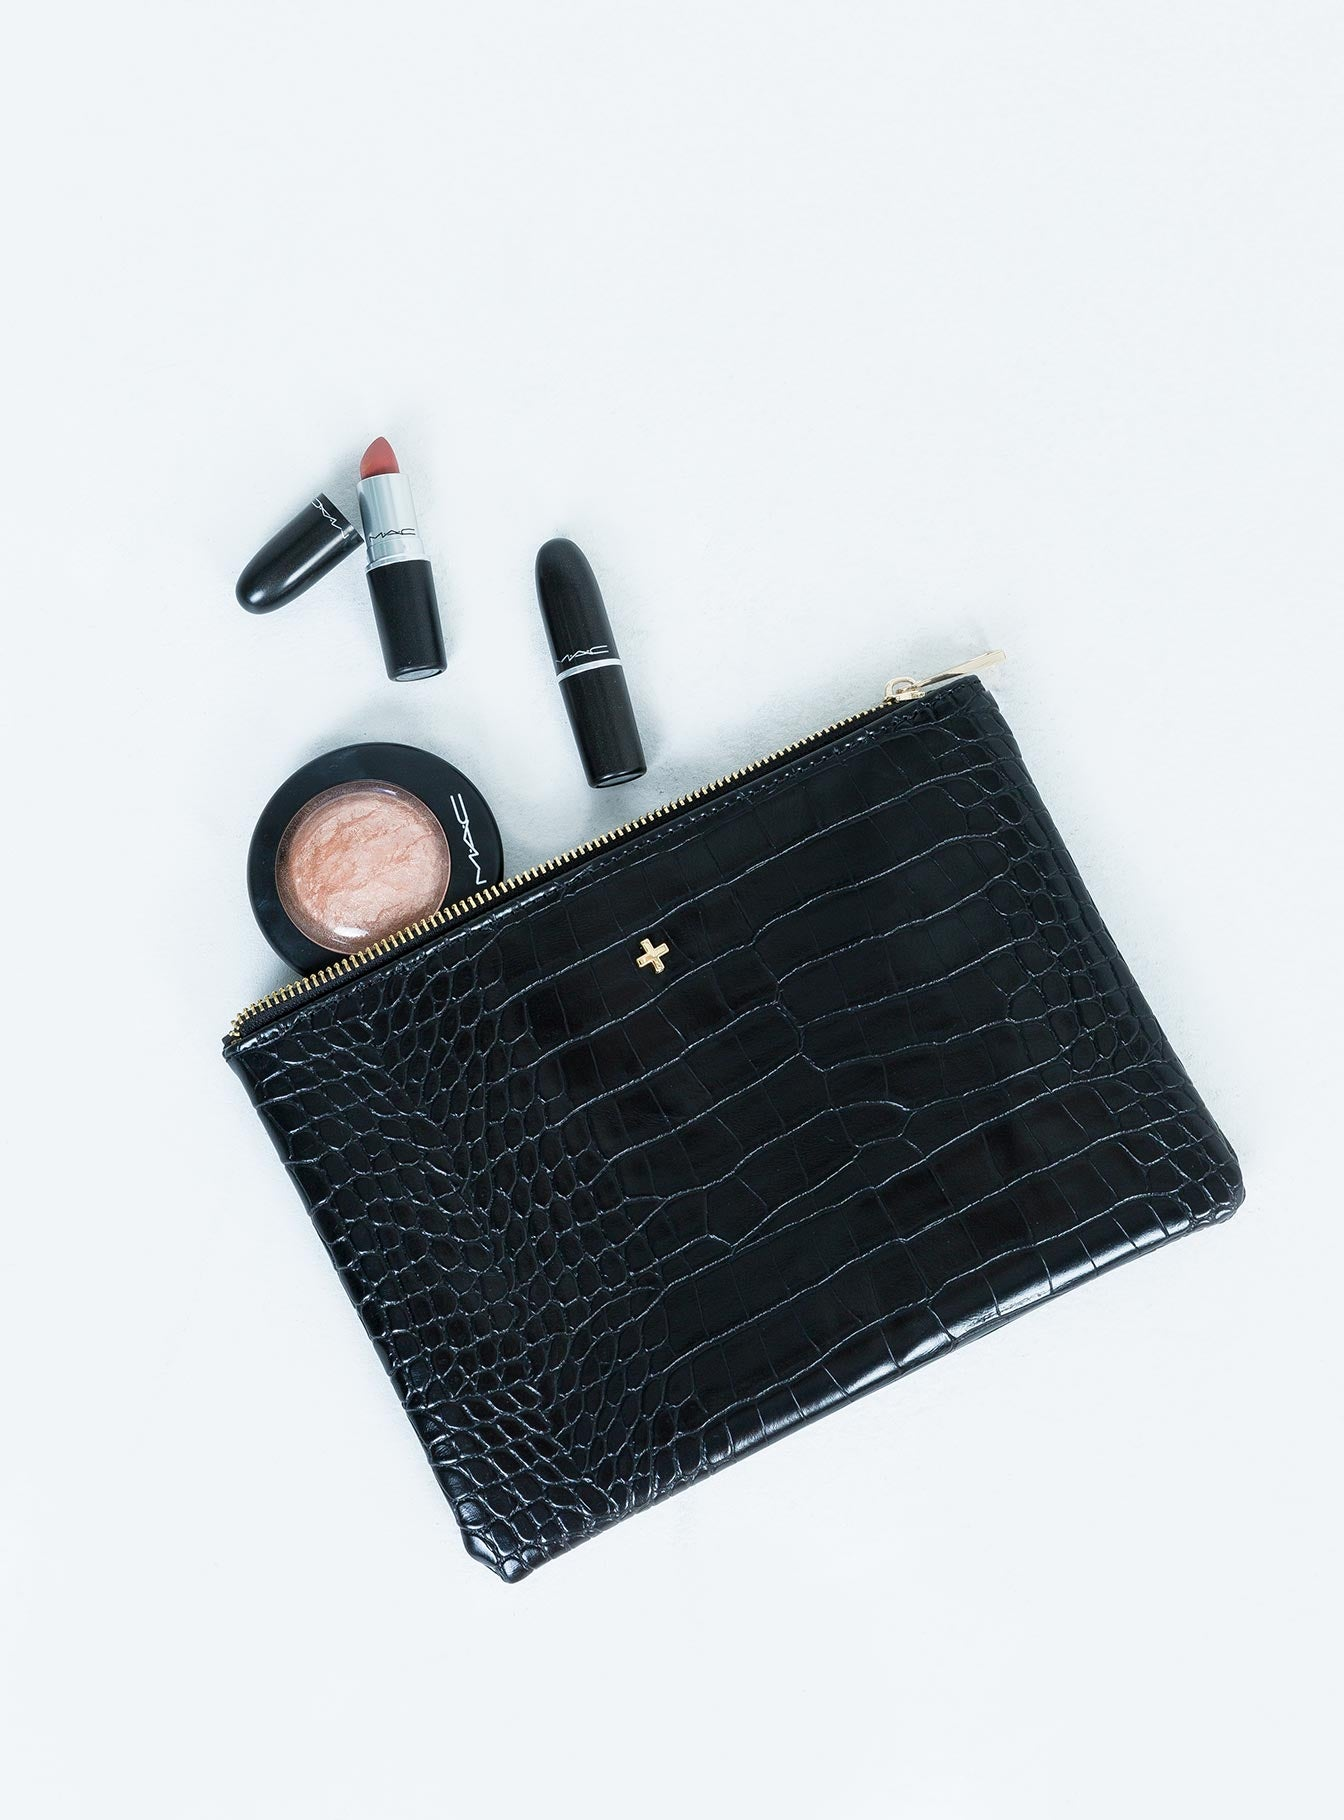 Peta & Jain Malone Black Croc Make-Up Bag